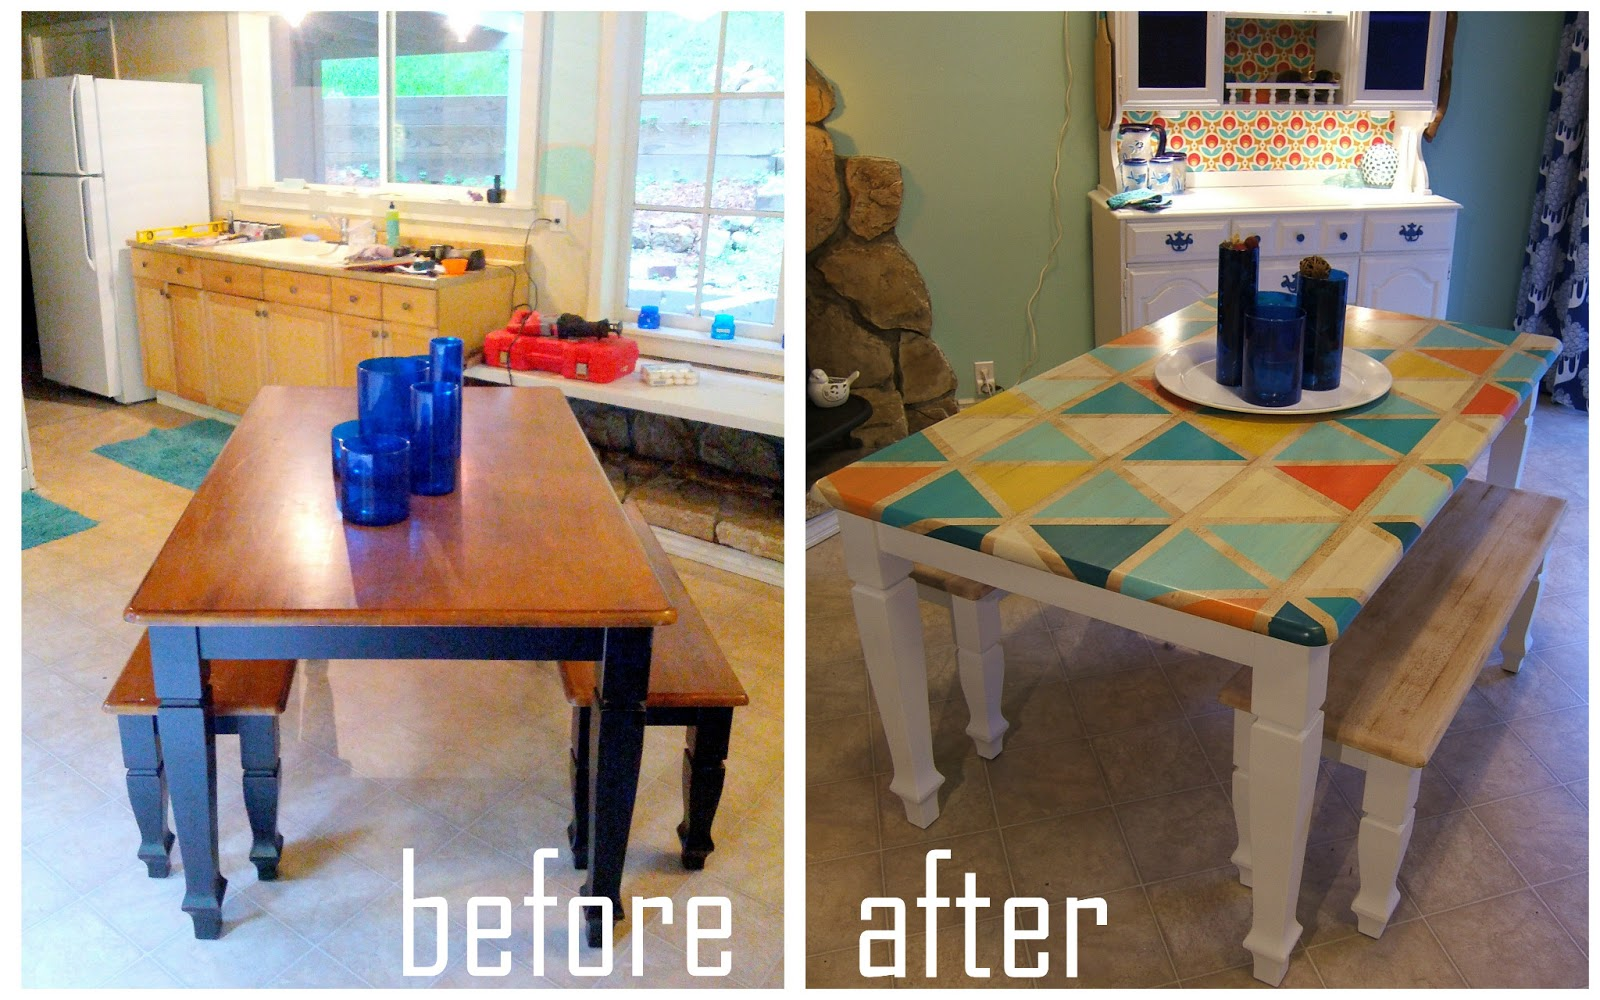 Yar enter pirate accent a satisfying before after she be end creepy pirate voice - Kitchen table ideas ...